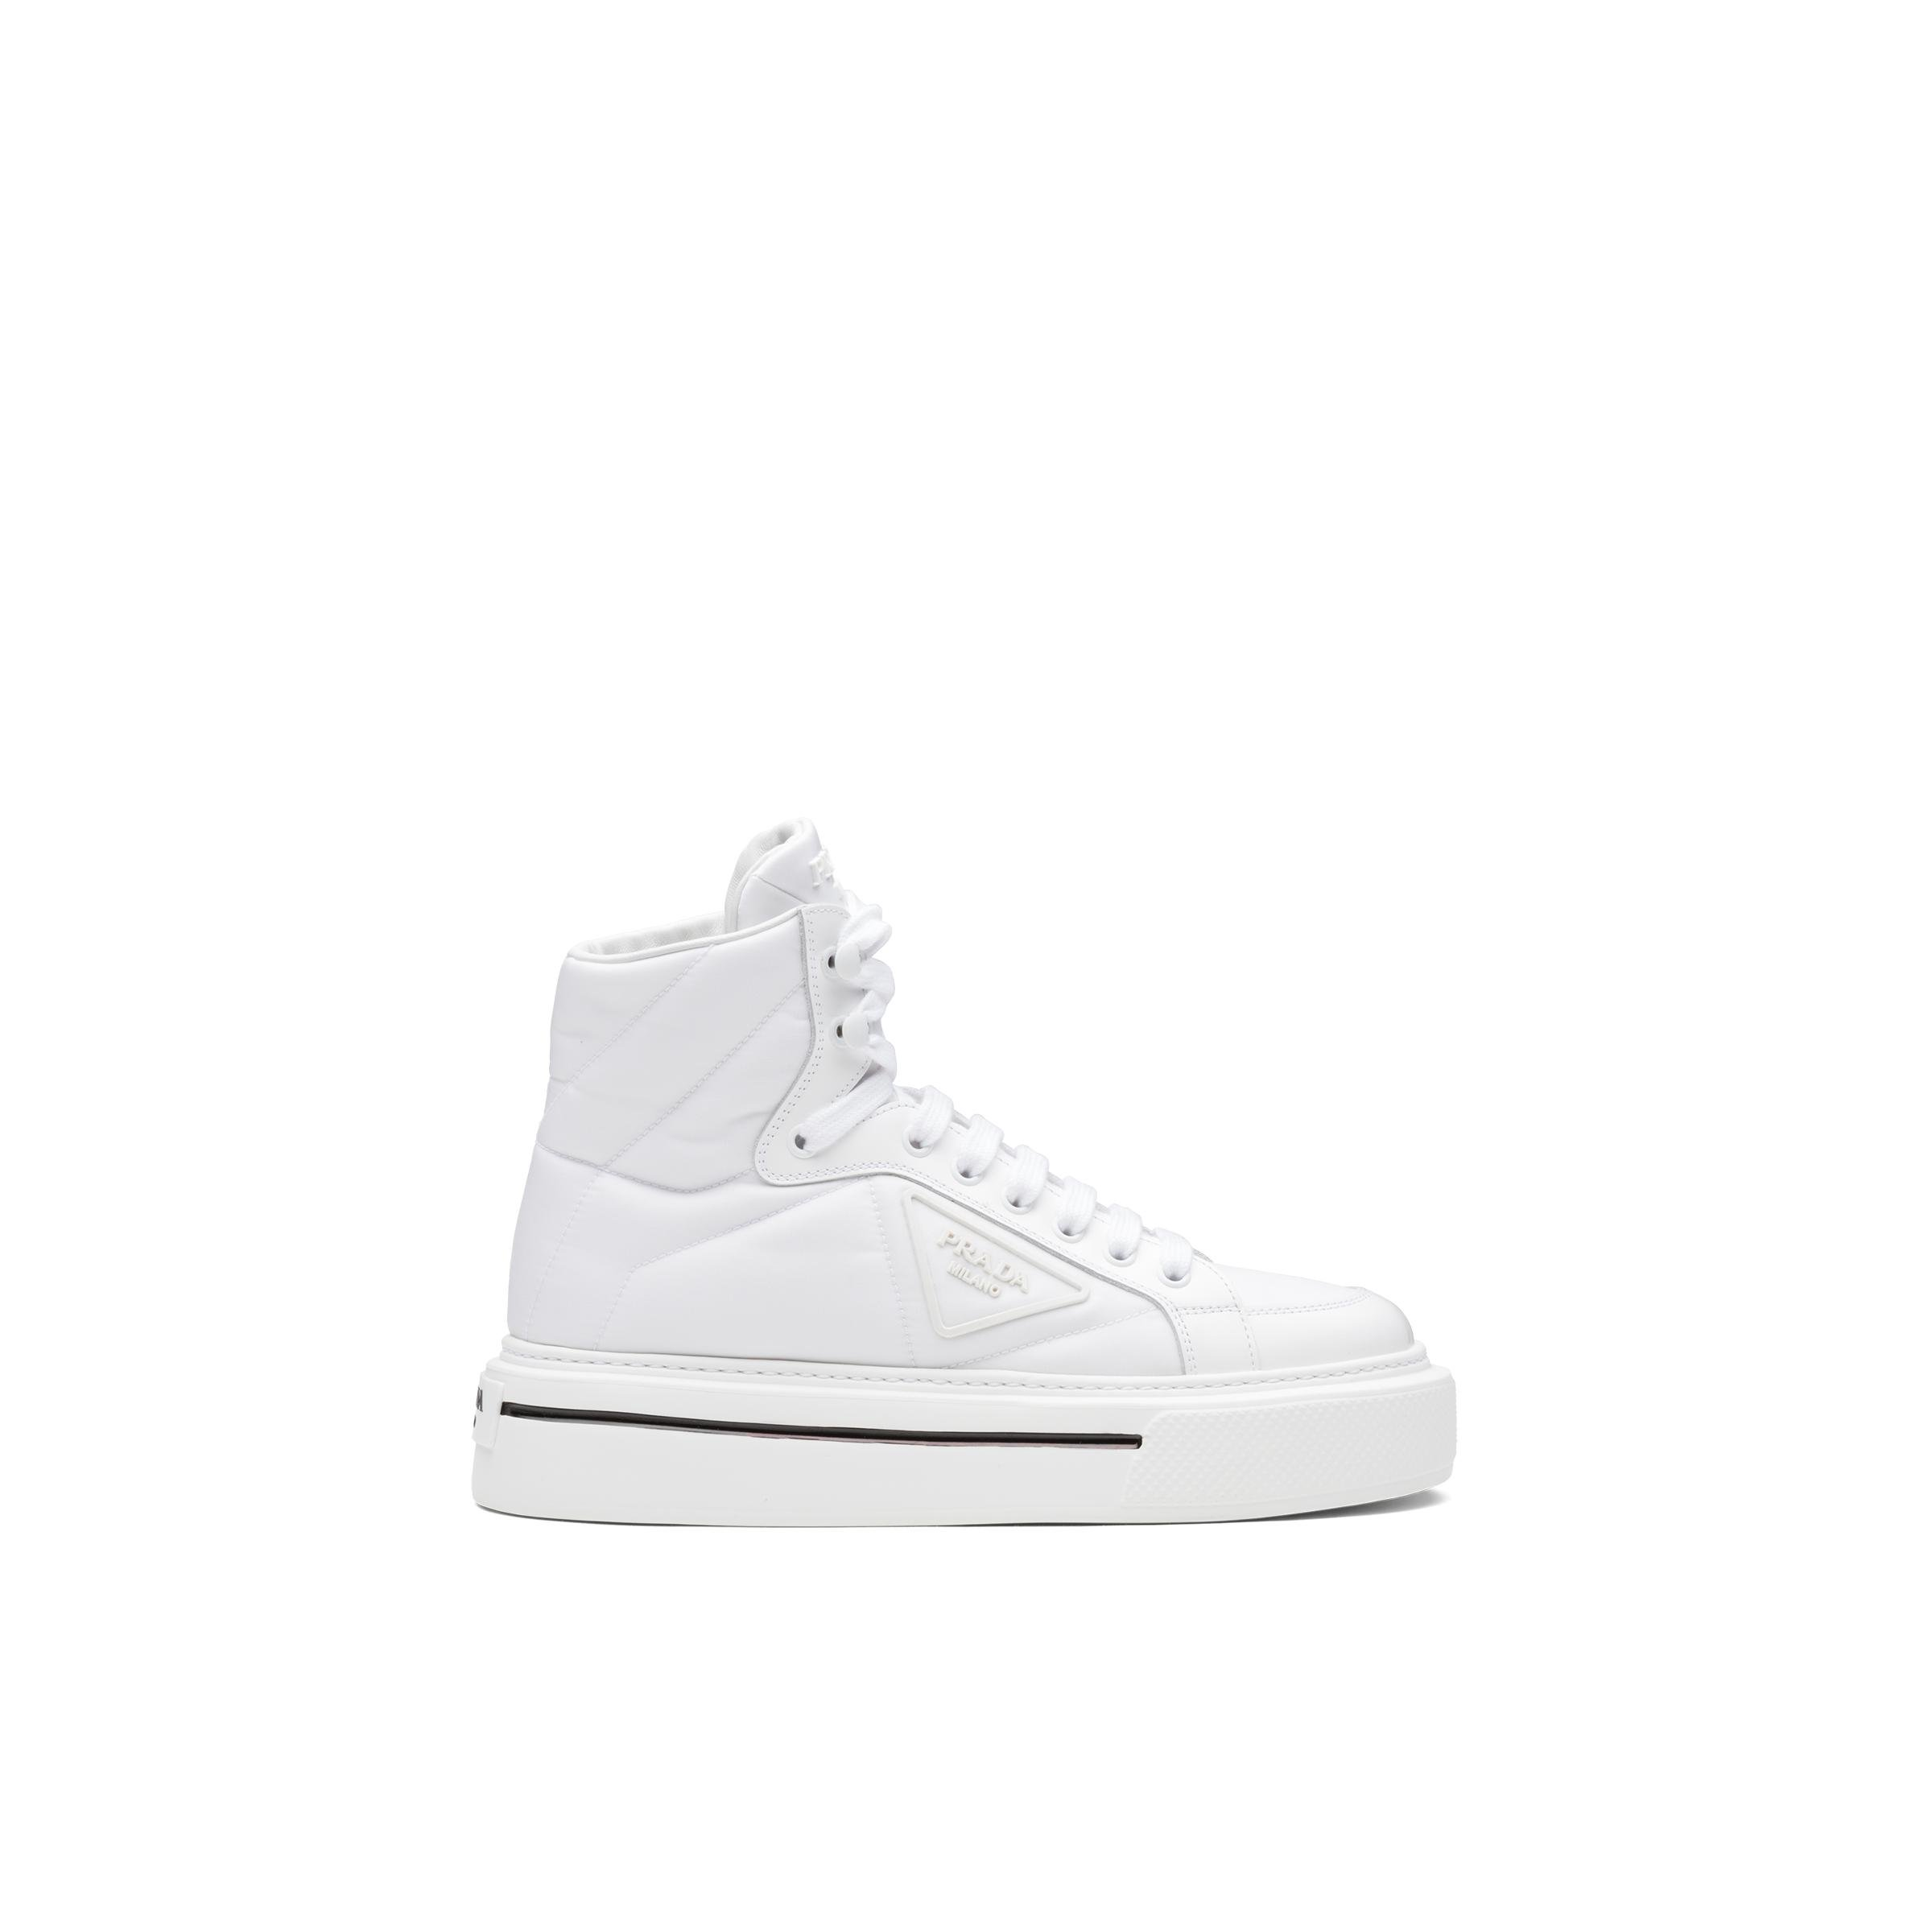 Macro Re-nylon And Brushed Leather High-top Sneakers Women White 2